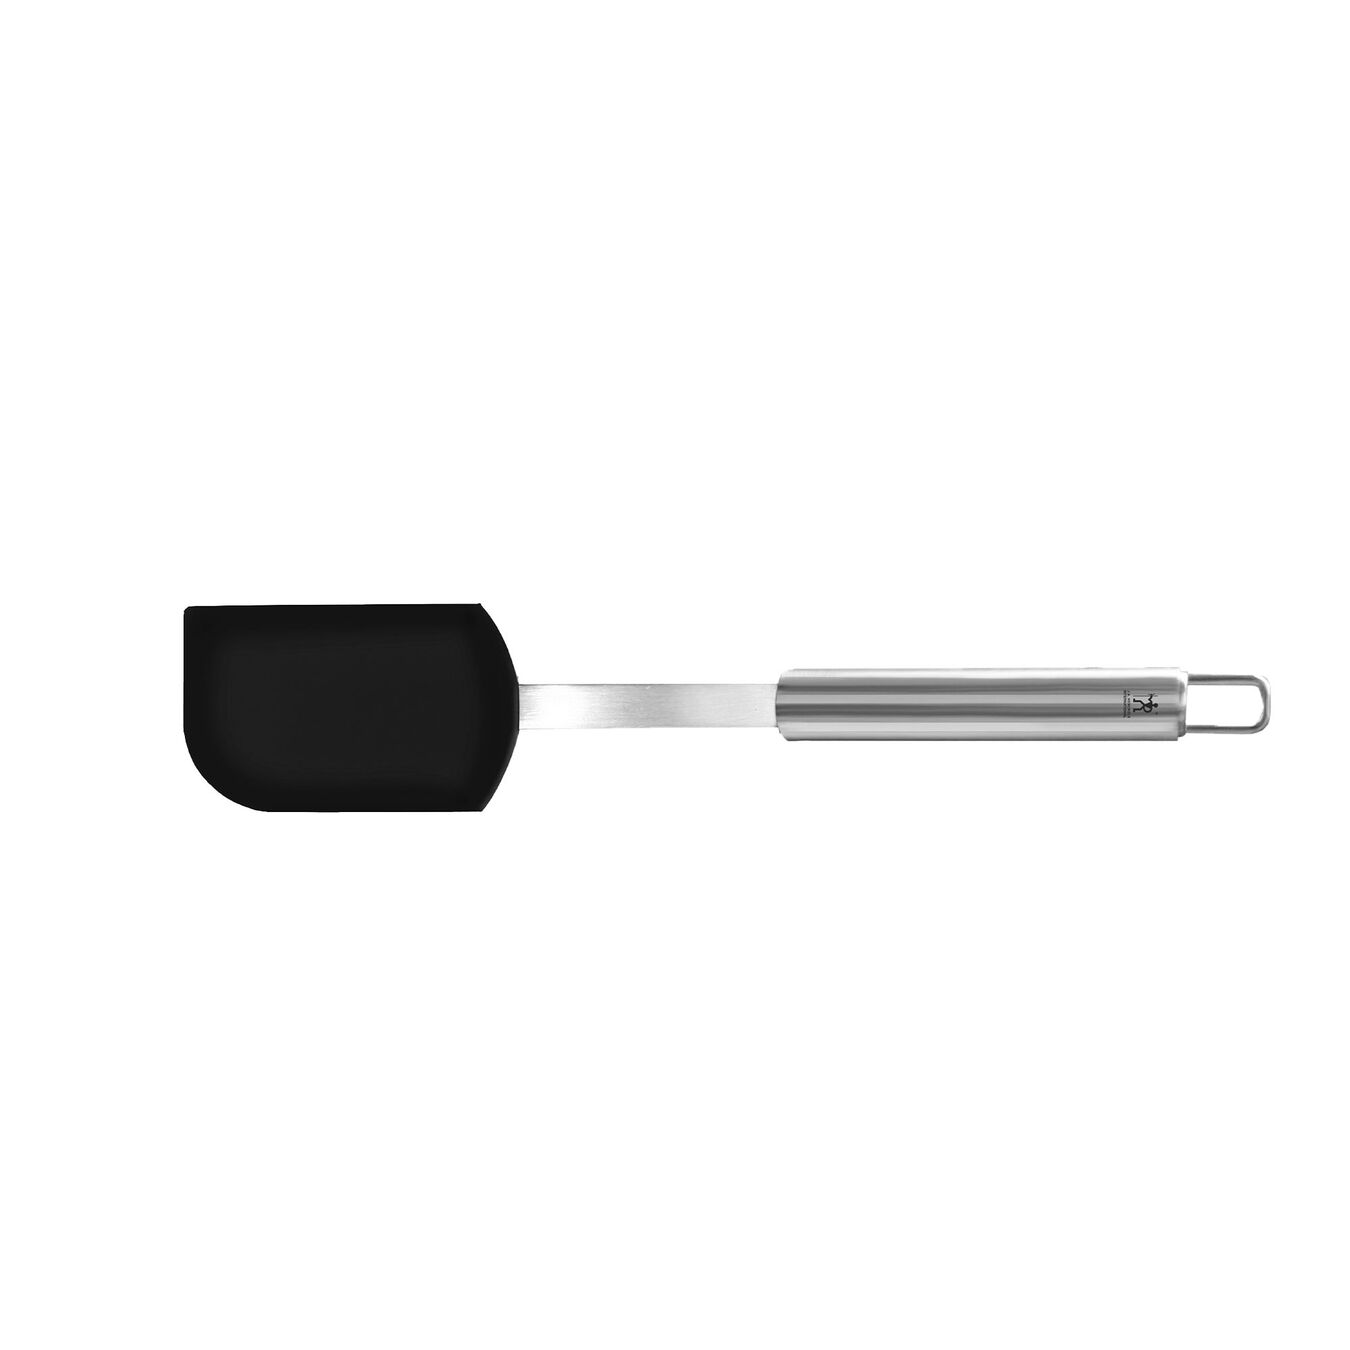 18/10 Stainless Steel Spatula,,large 1